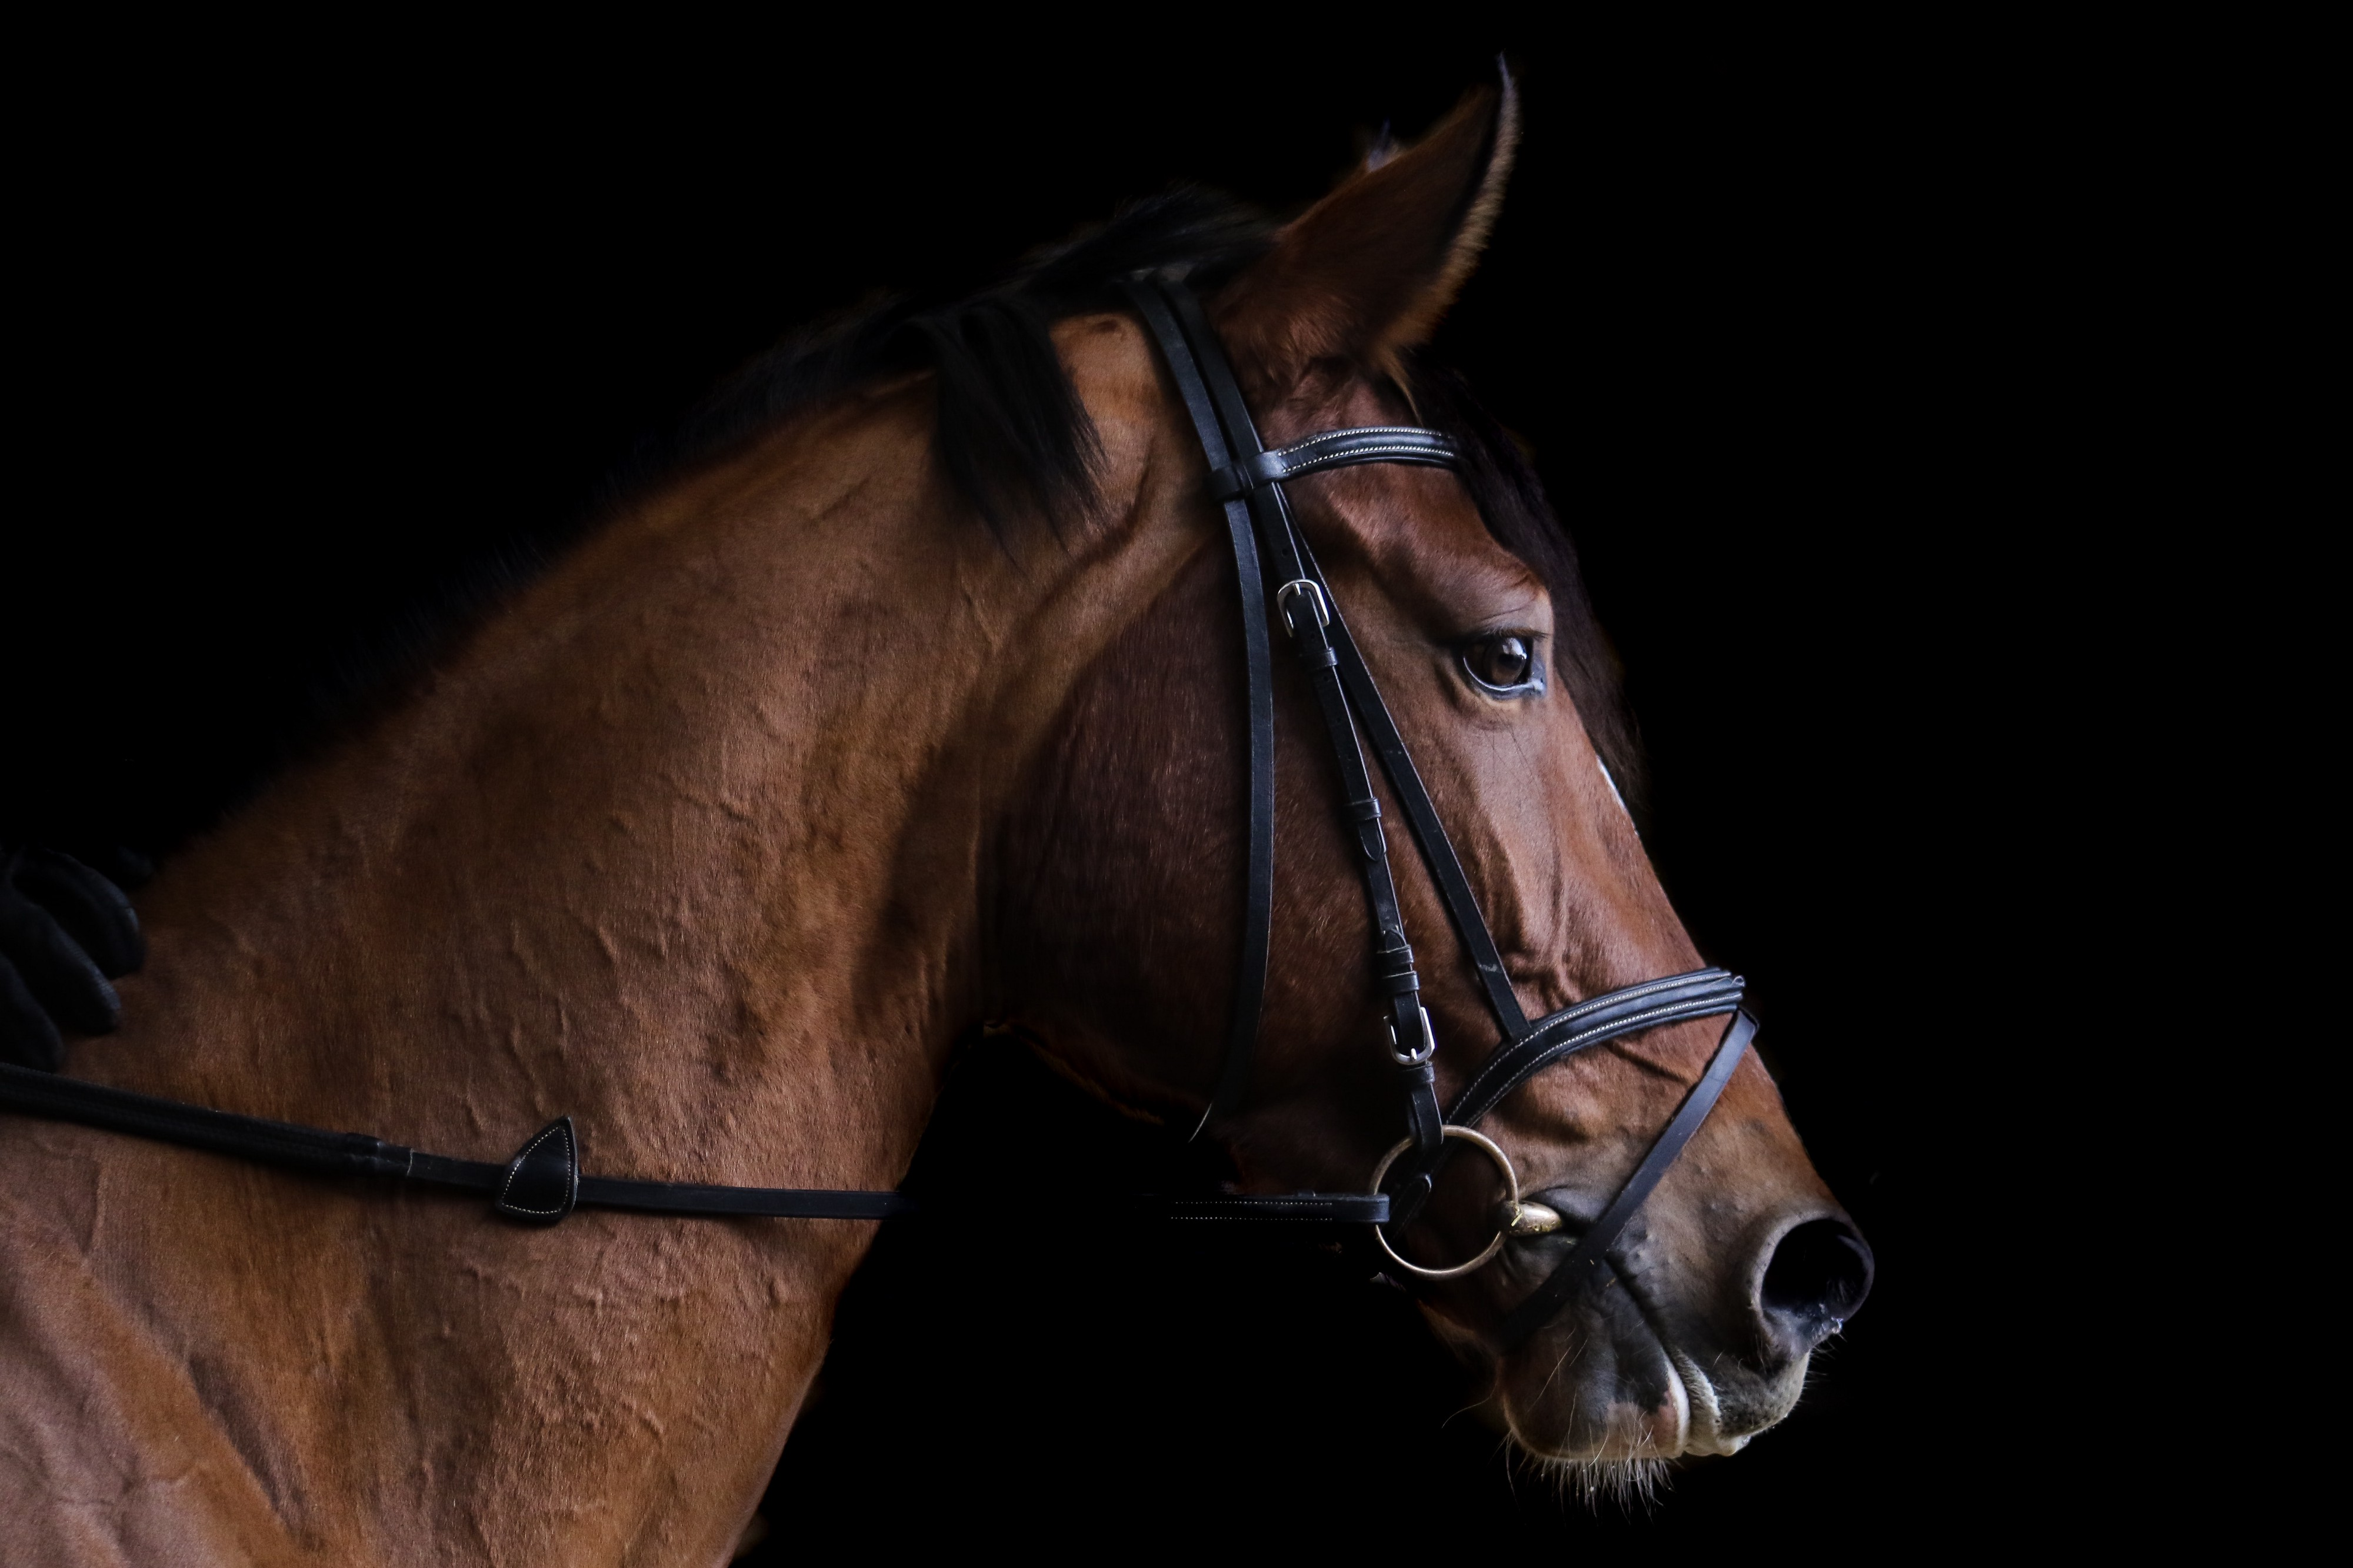 horse and bridle in profile